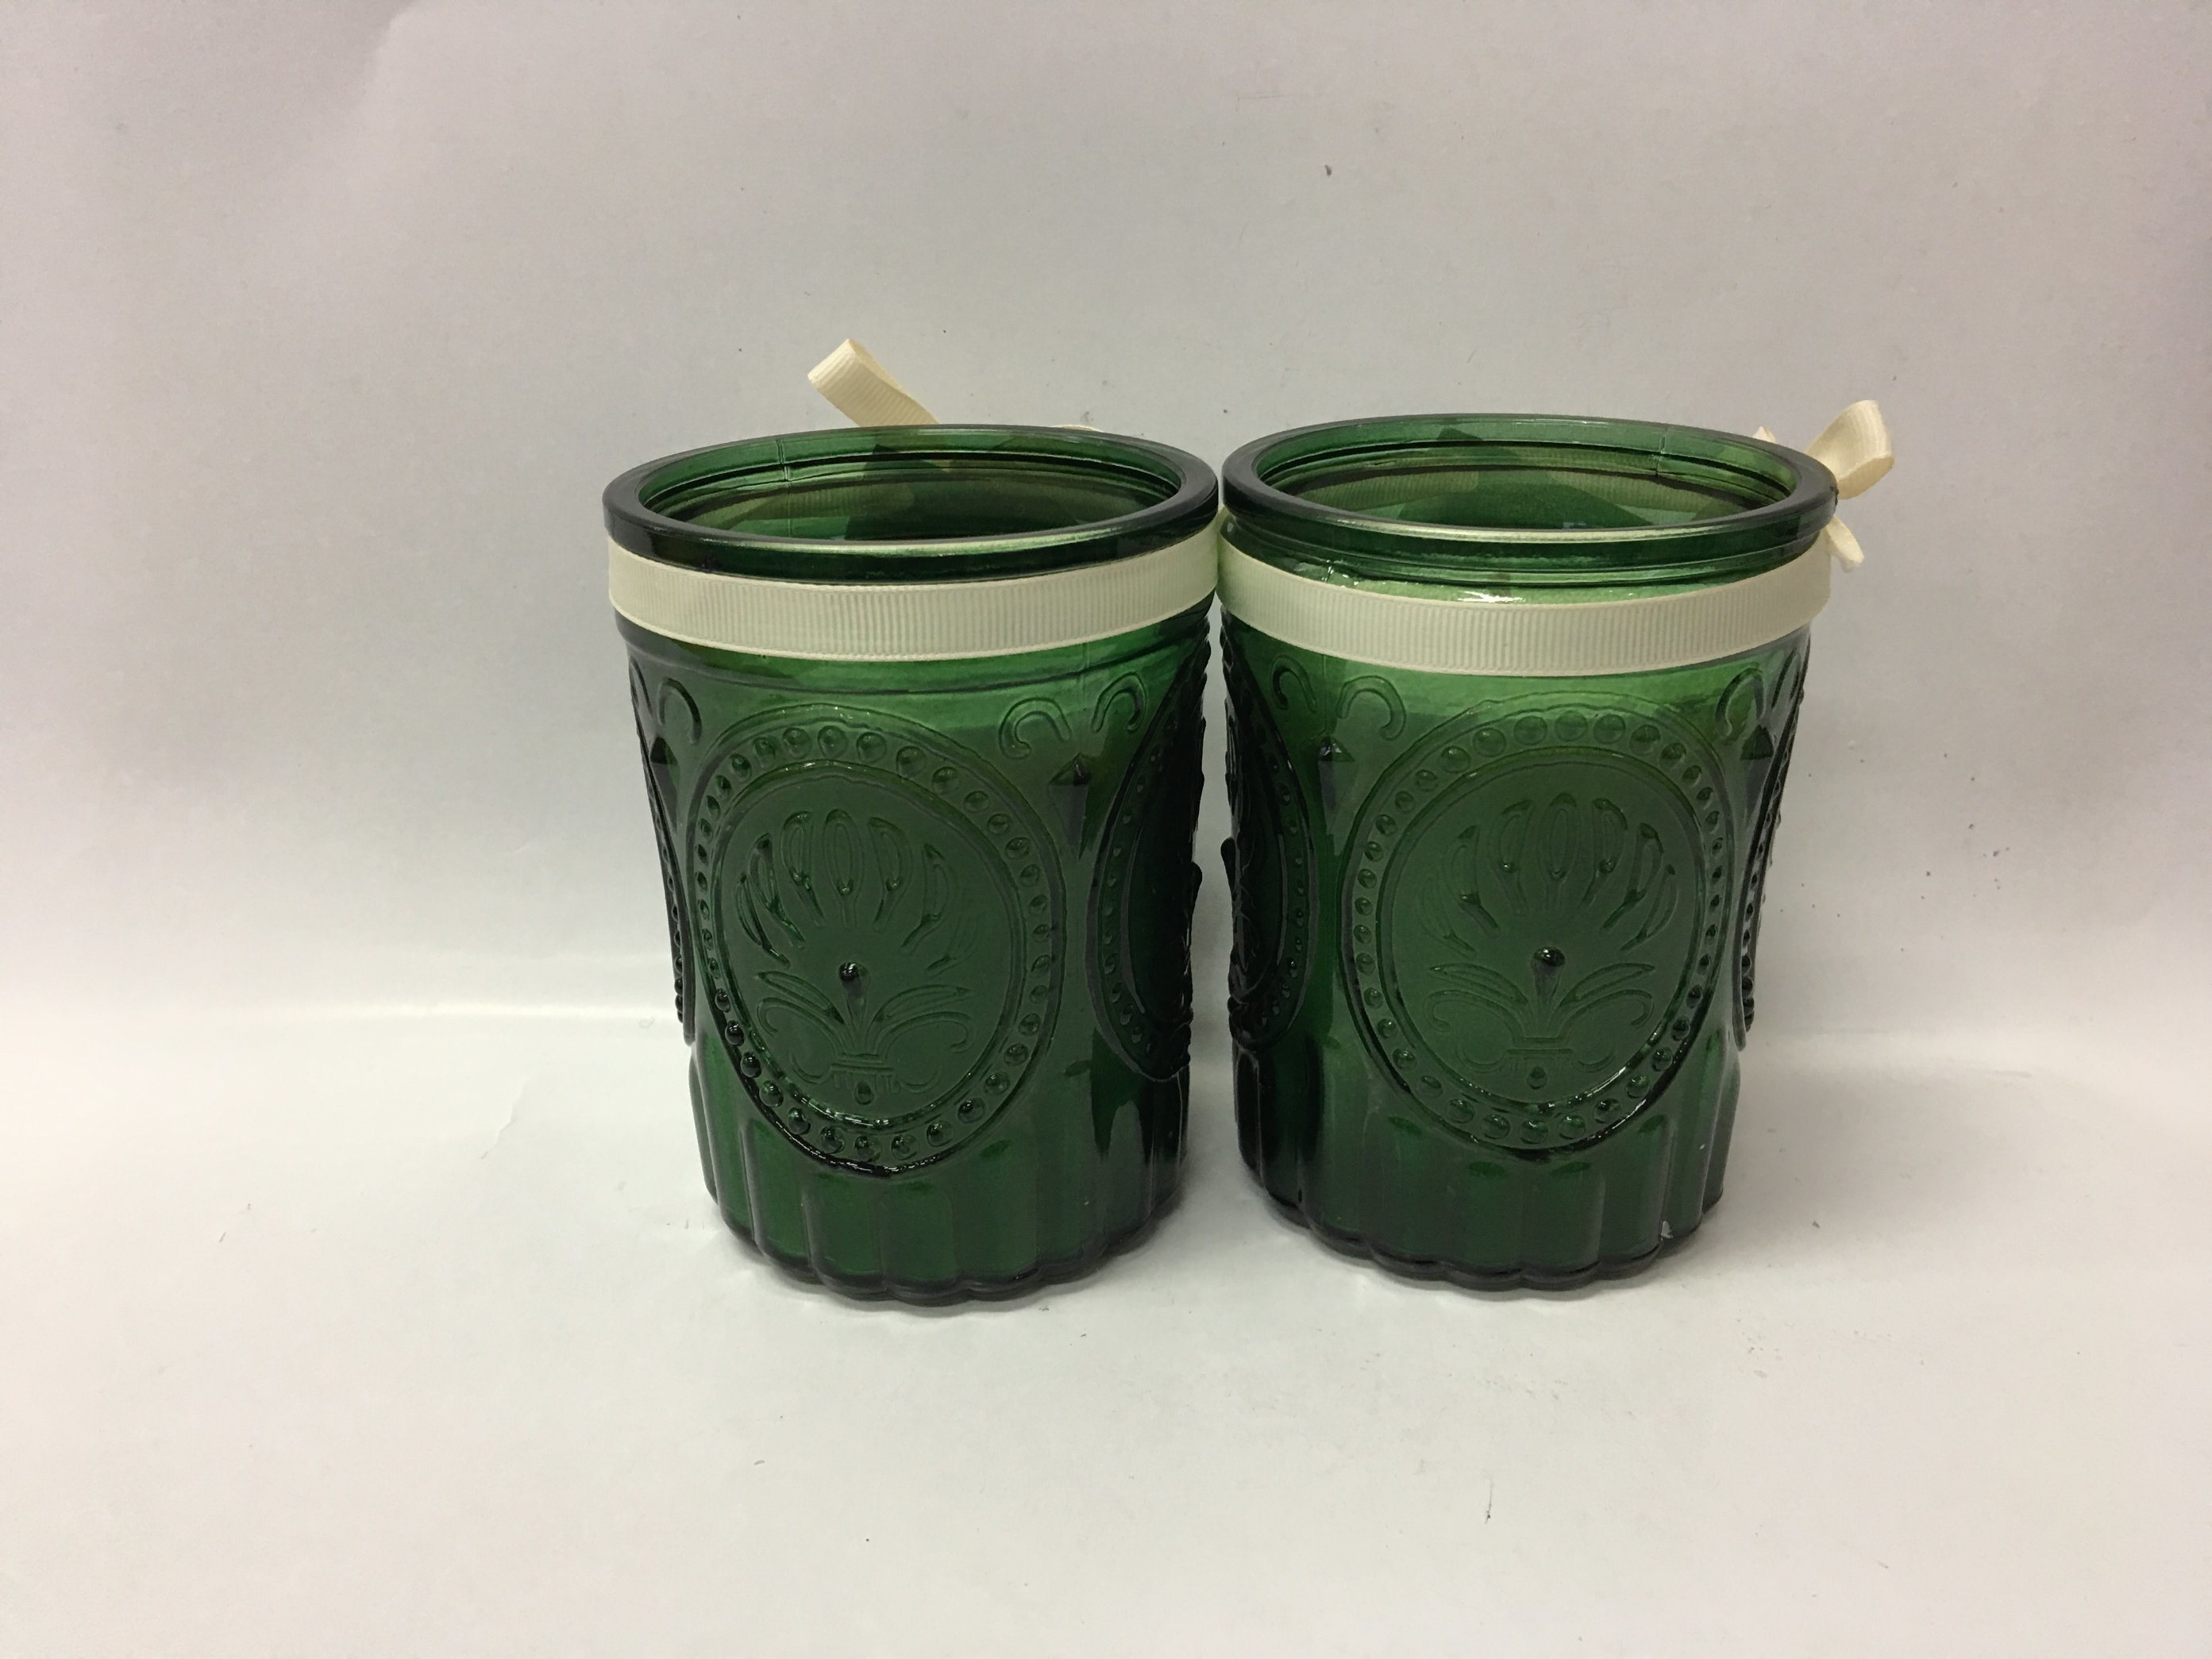 Home Air Fresher Popular Natural Soy Wax or Paraffin Wax Candle